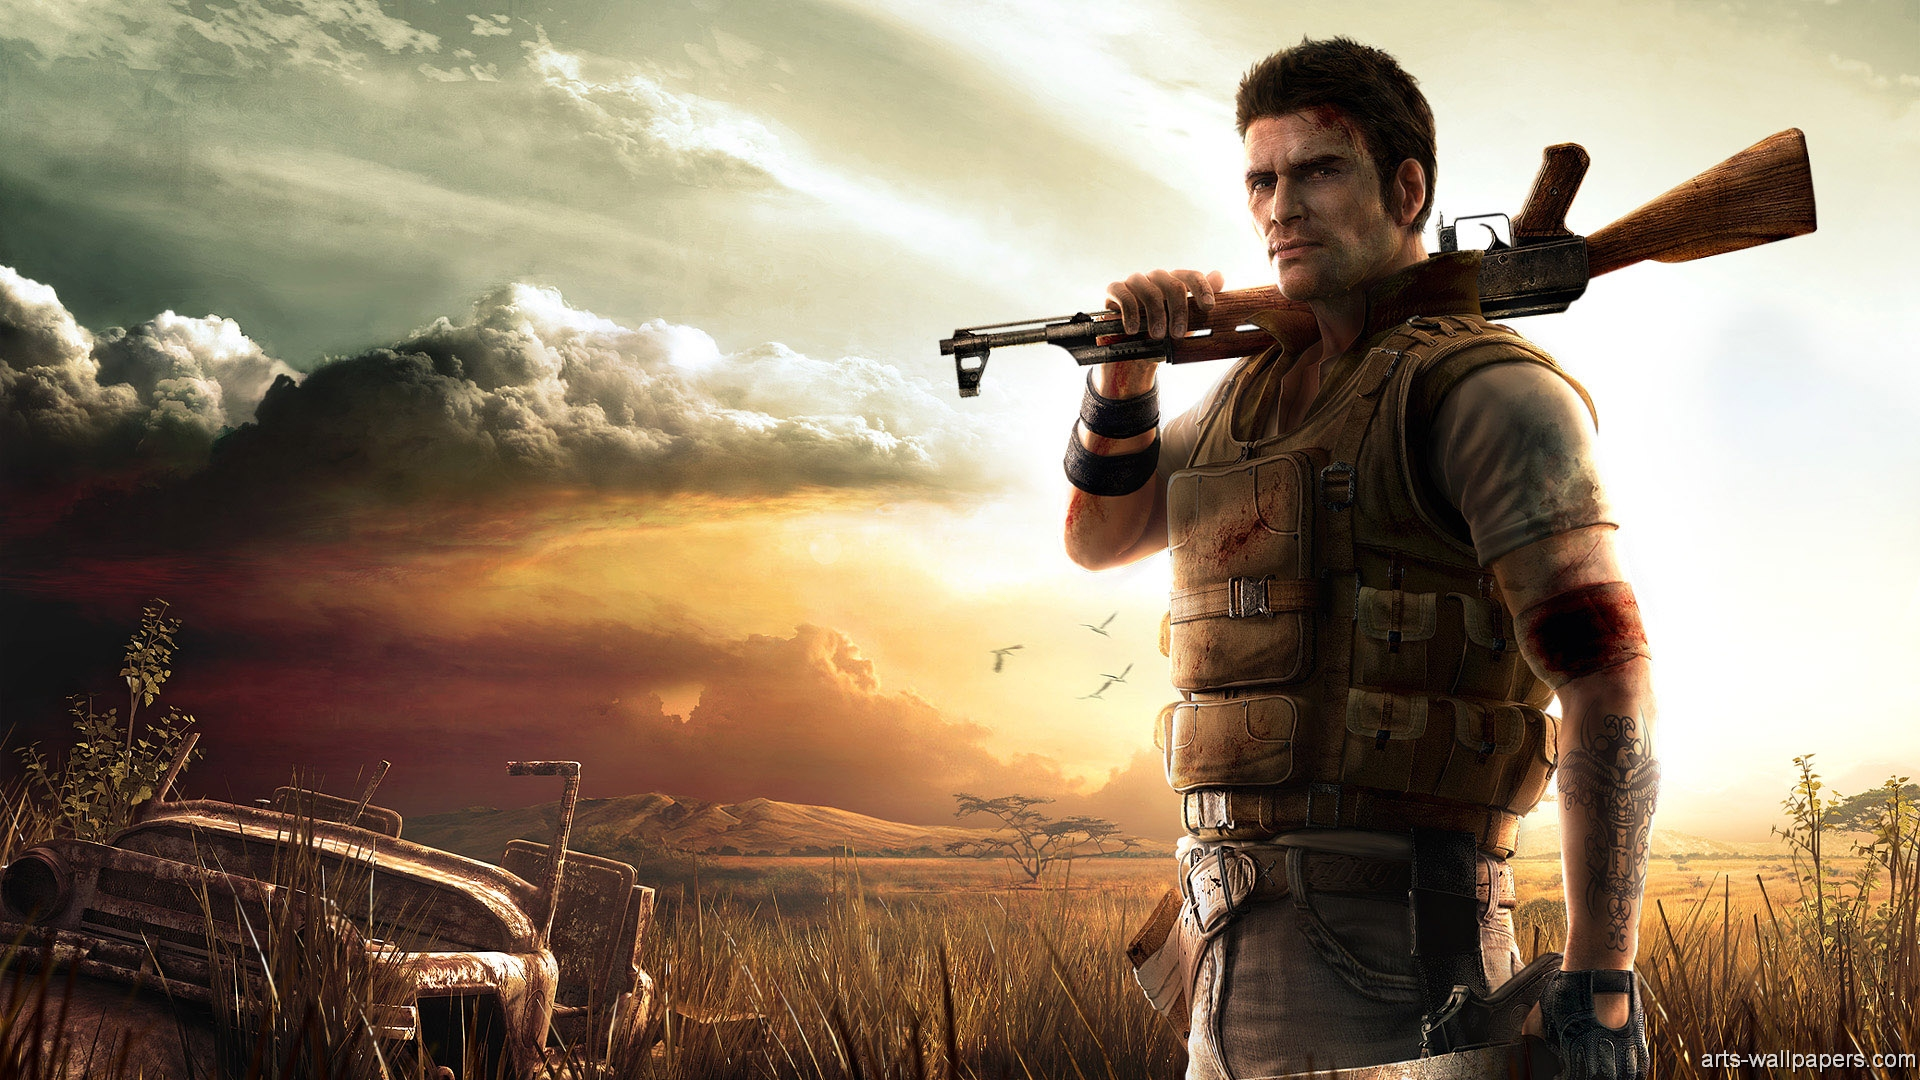 XBOX 360 PS3 Video Game HD Wallpapers 1920 x 1080 HQ 1920x1080